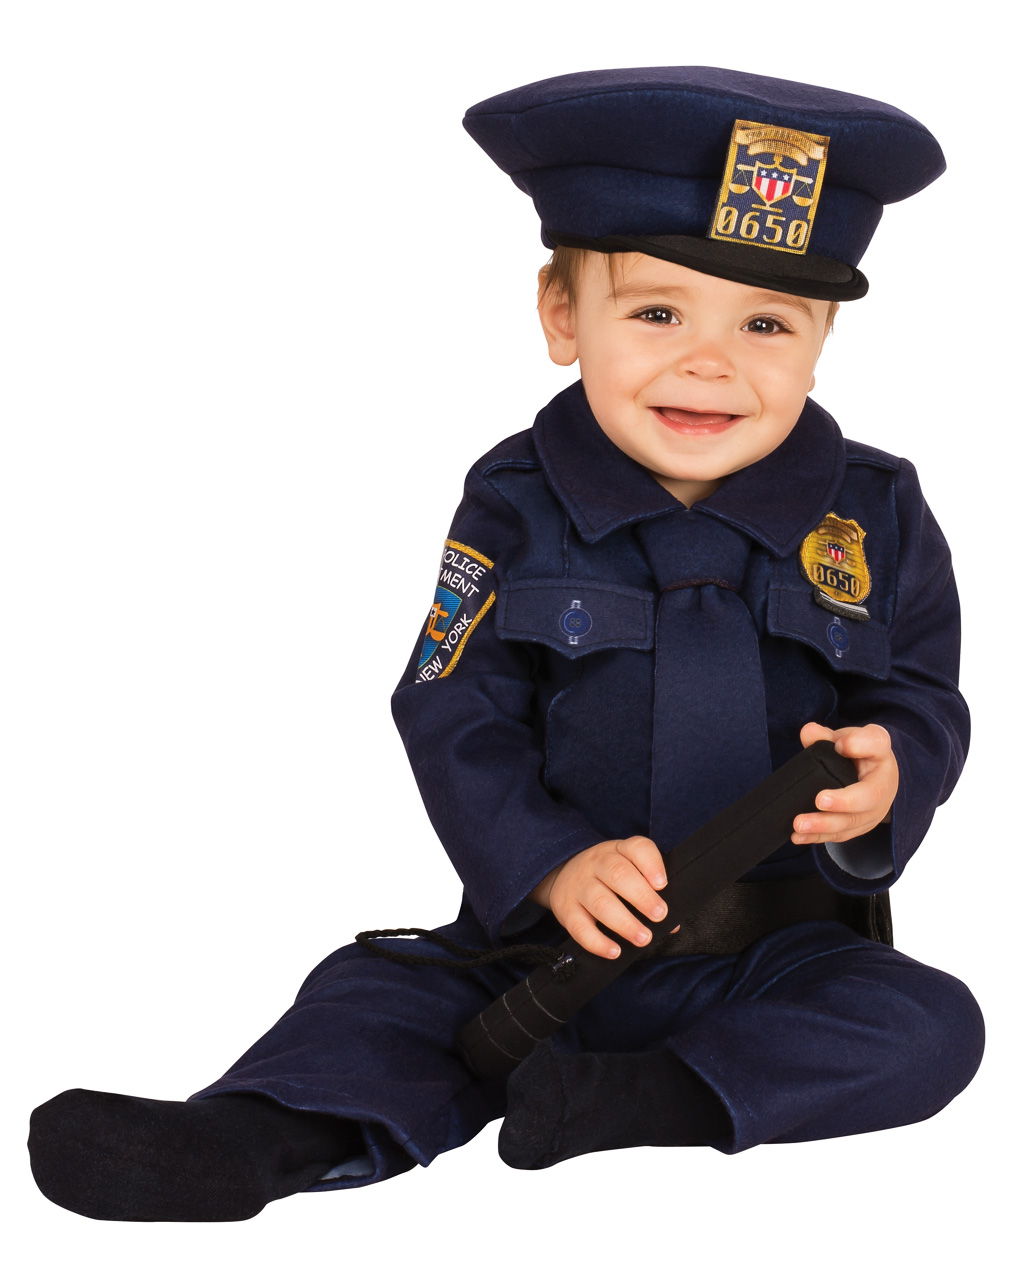 Police Infant Costume Professional Costumes Horror Shop Com